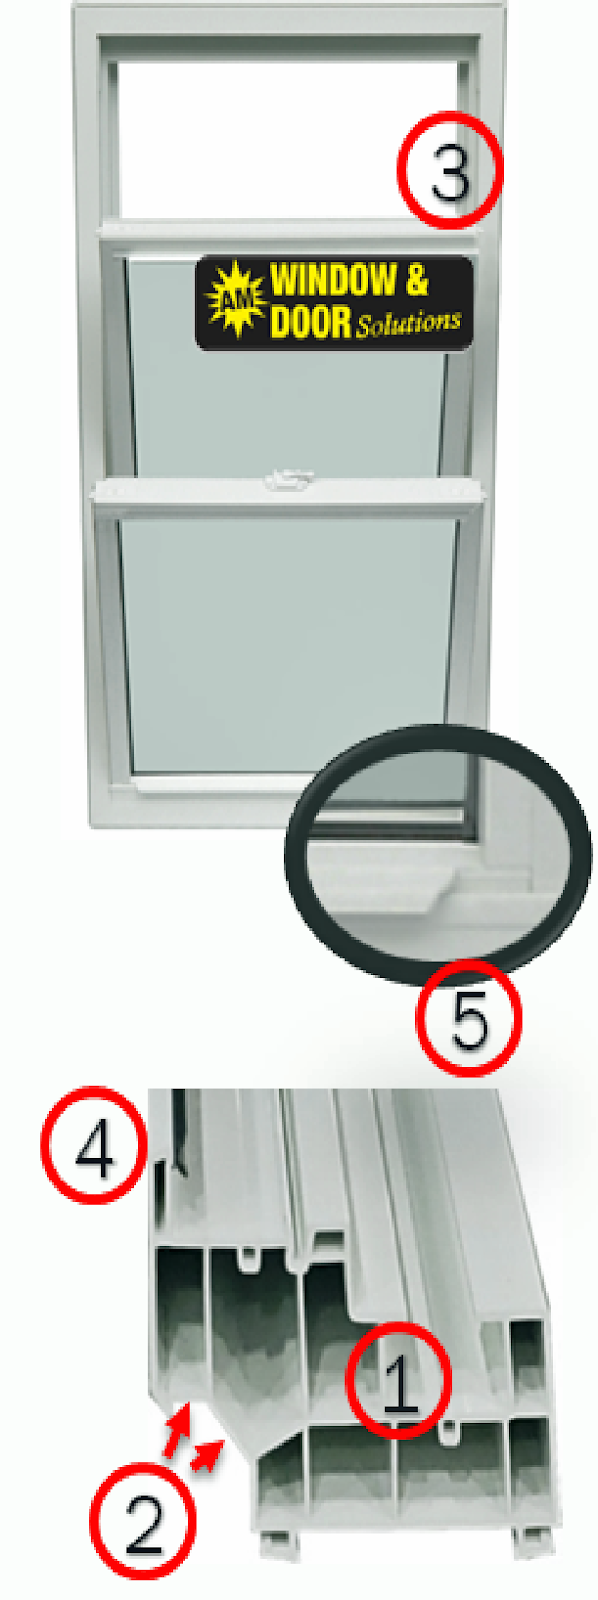 Double Hung Window Diagram